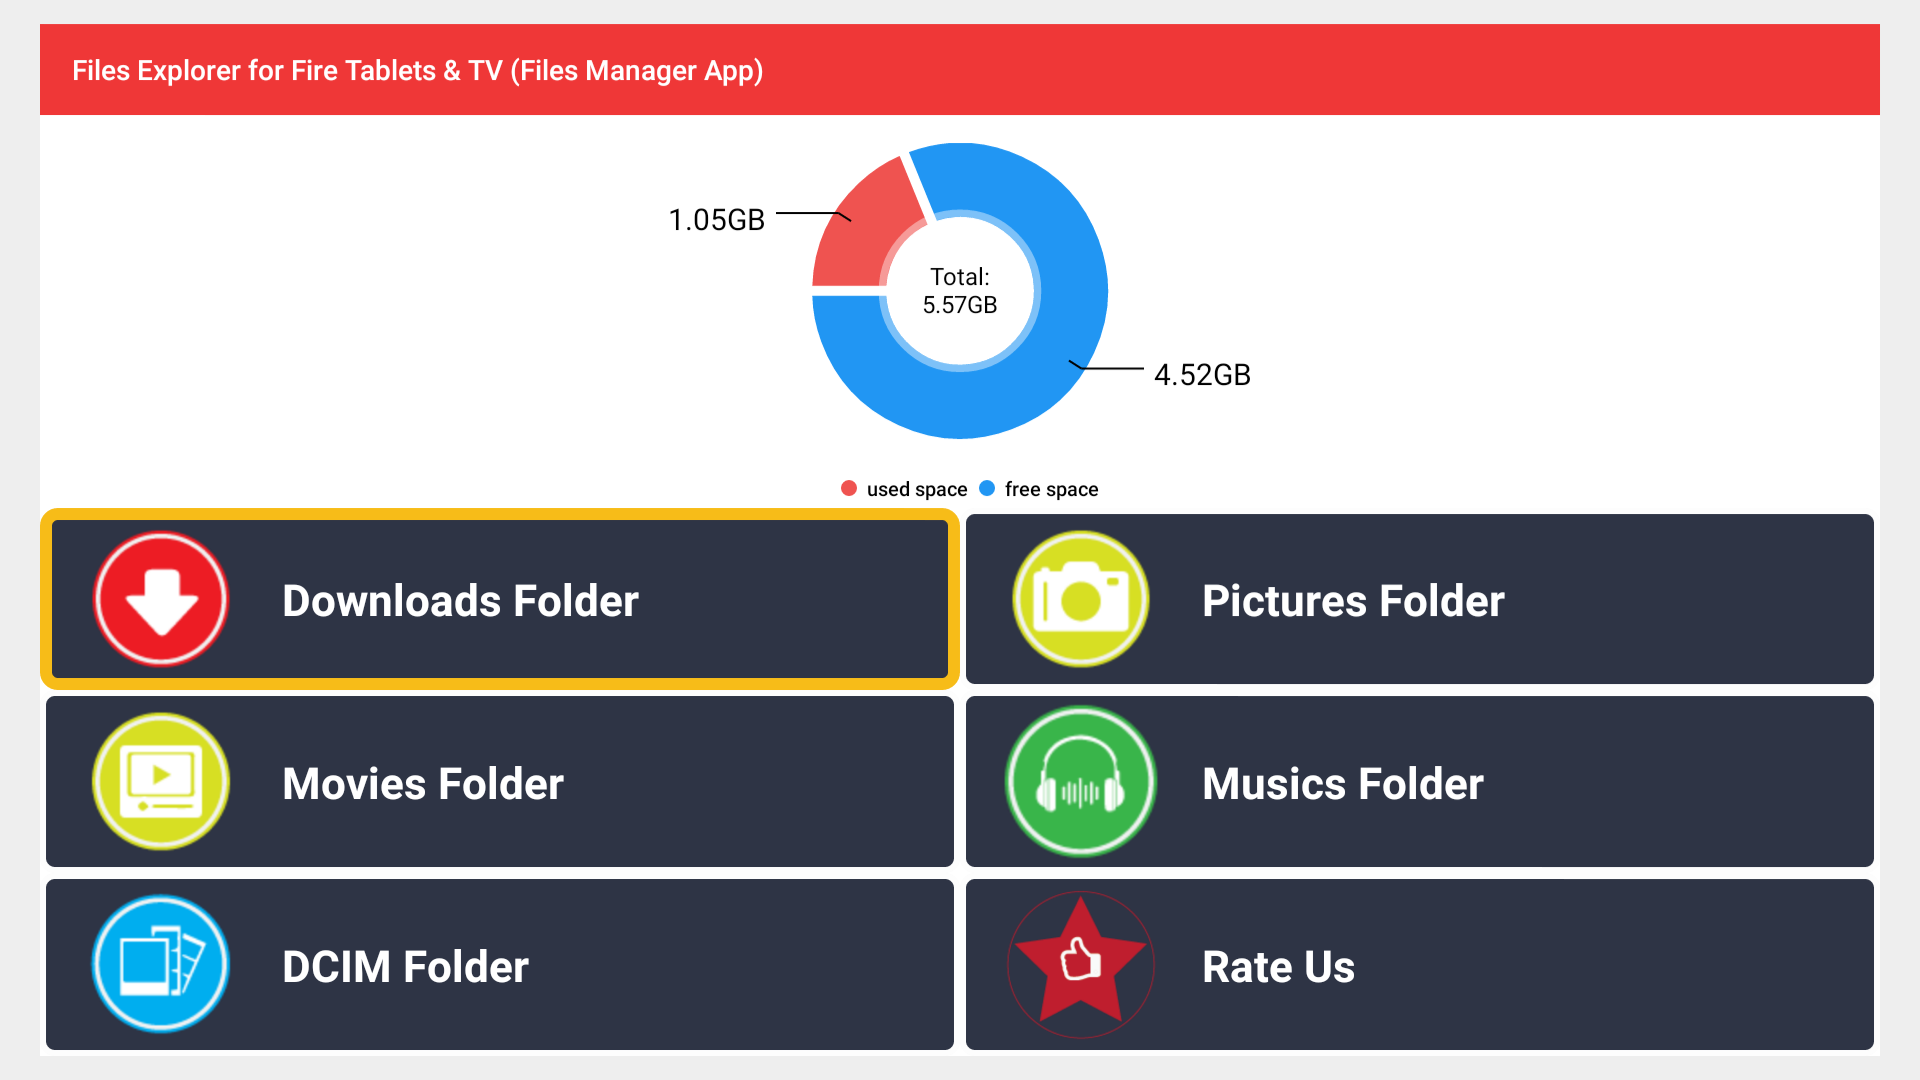 Amazon Com Files Explorer For Fire Tablets Tv Files Manager App Appstore For Android